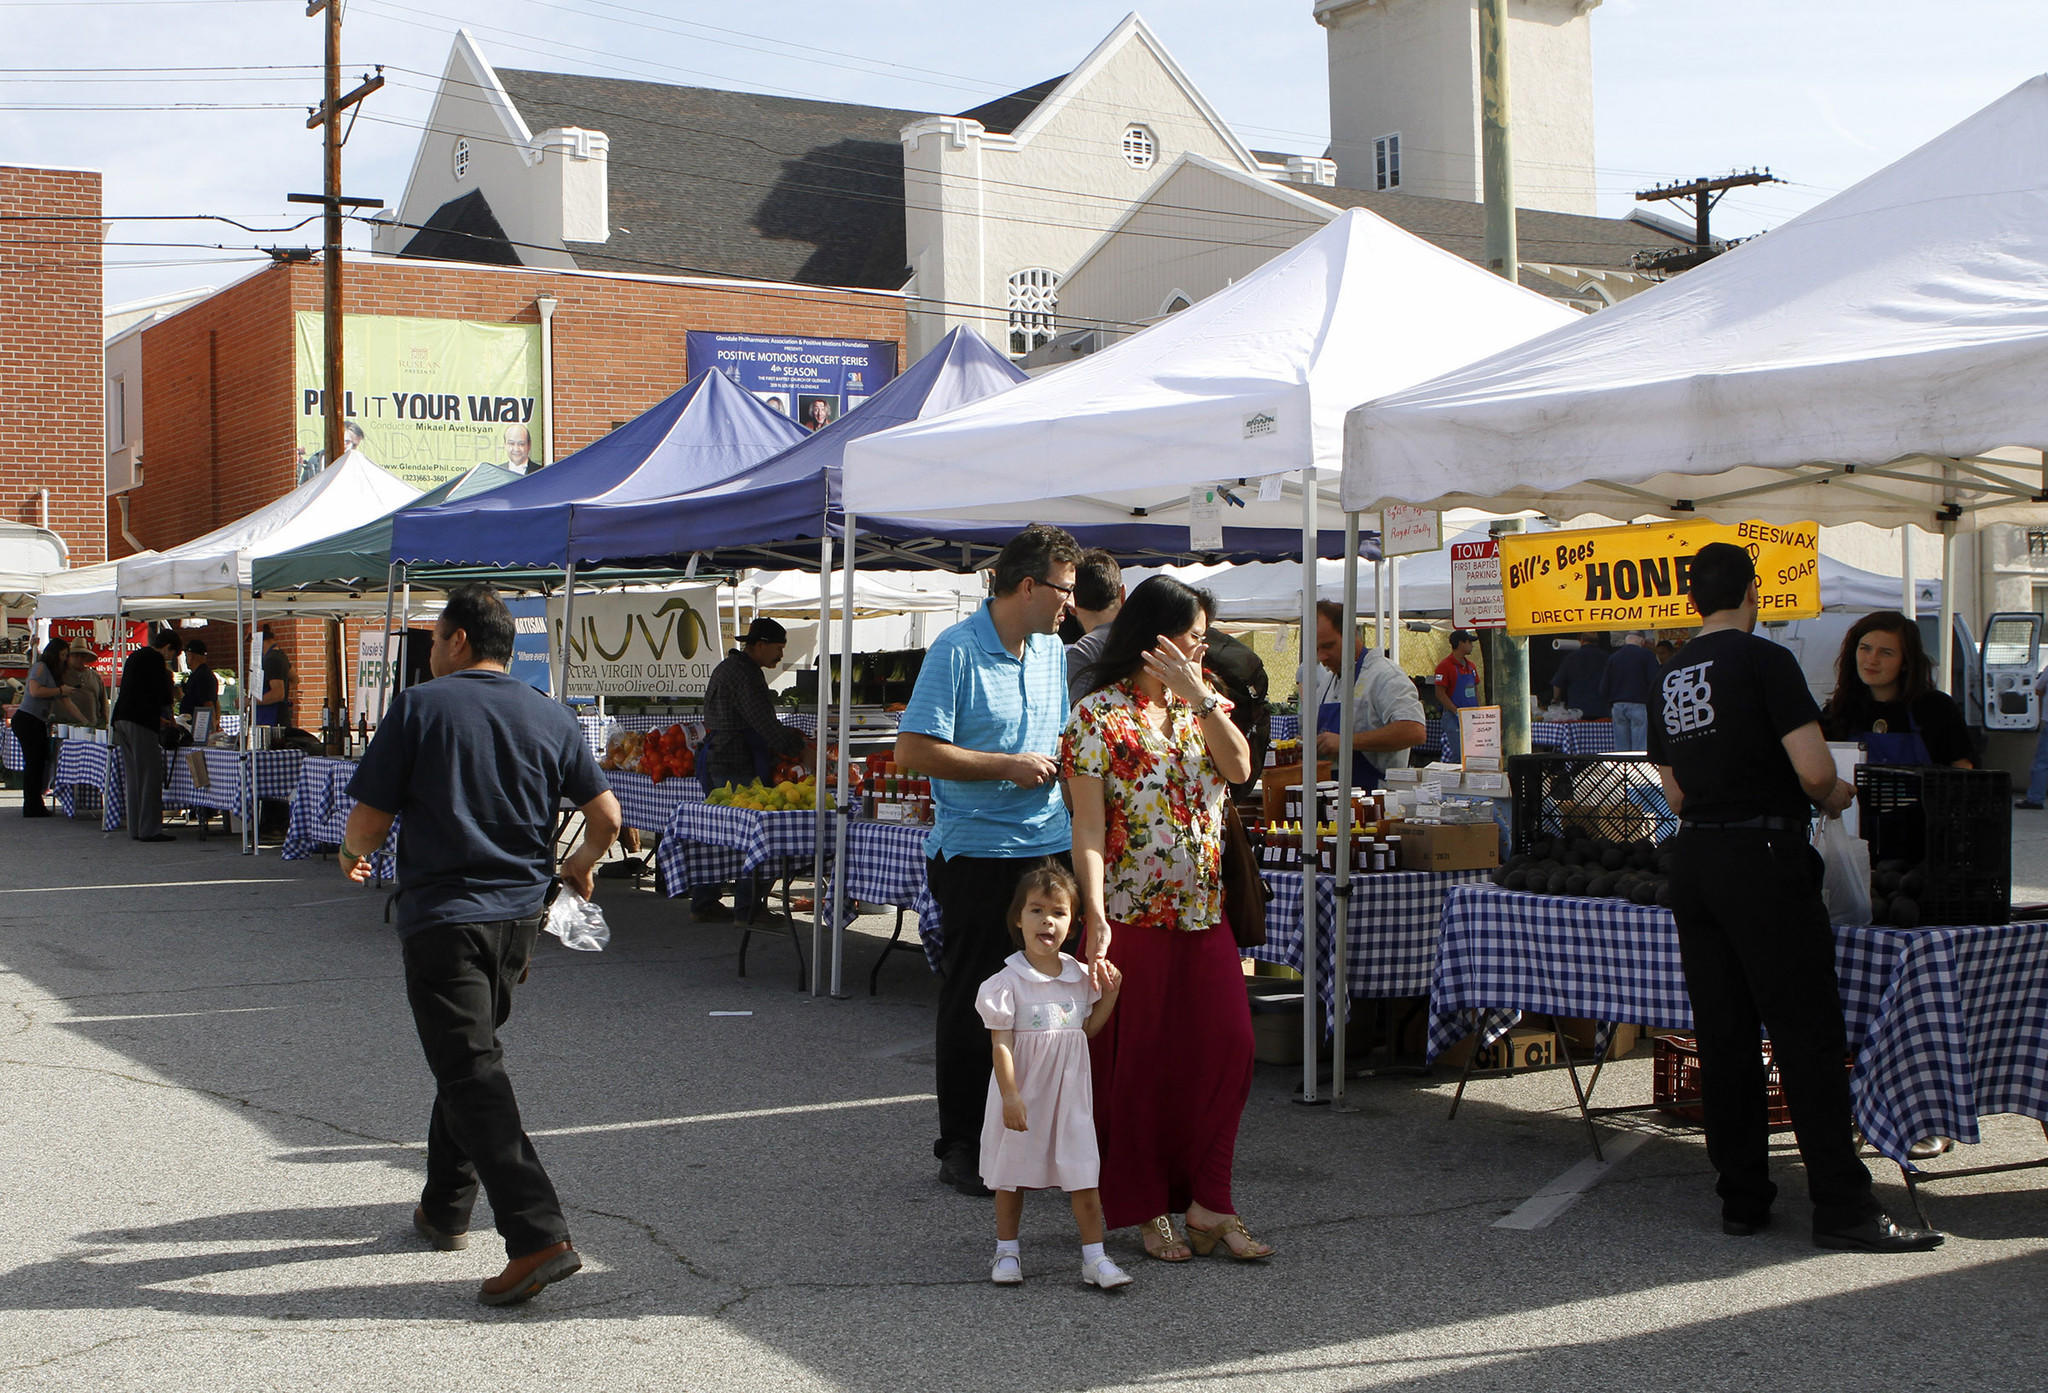 The Glendale Farmers Market has been in its new location, the parking lot of the First Baptist Church, for three weeks now. About 35 vendors are at the new location, pictured on Thursday, Jan. 23, 2014.